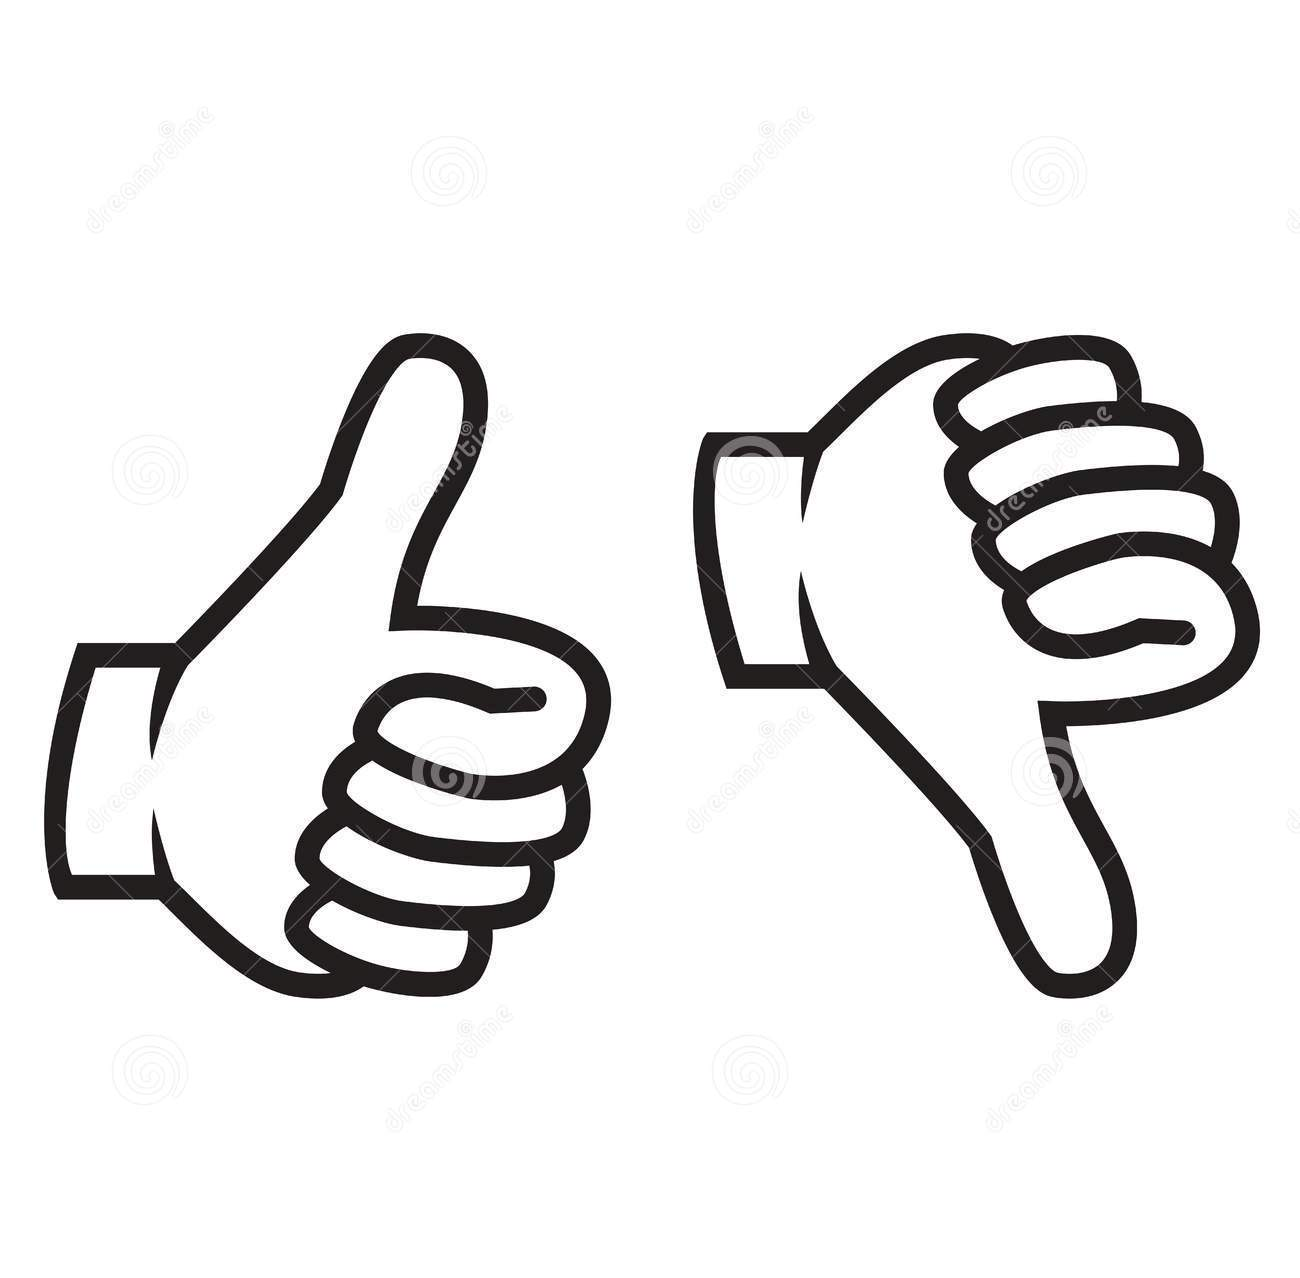 Clipart thumbs up silhouette. Down clip art gesture